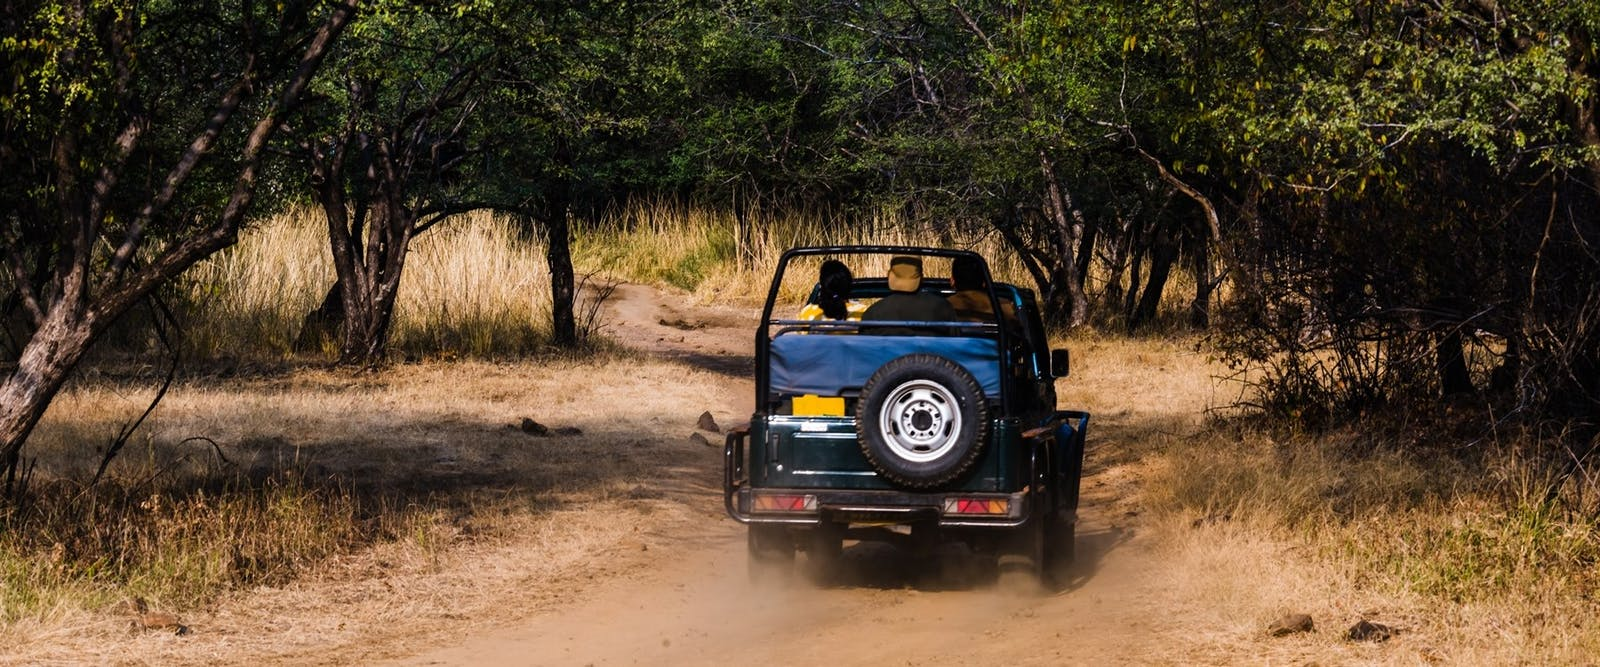 Jeep Game Drive at Ranthambore National Park